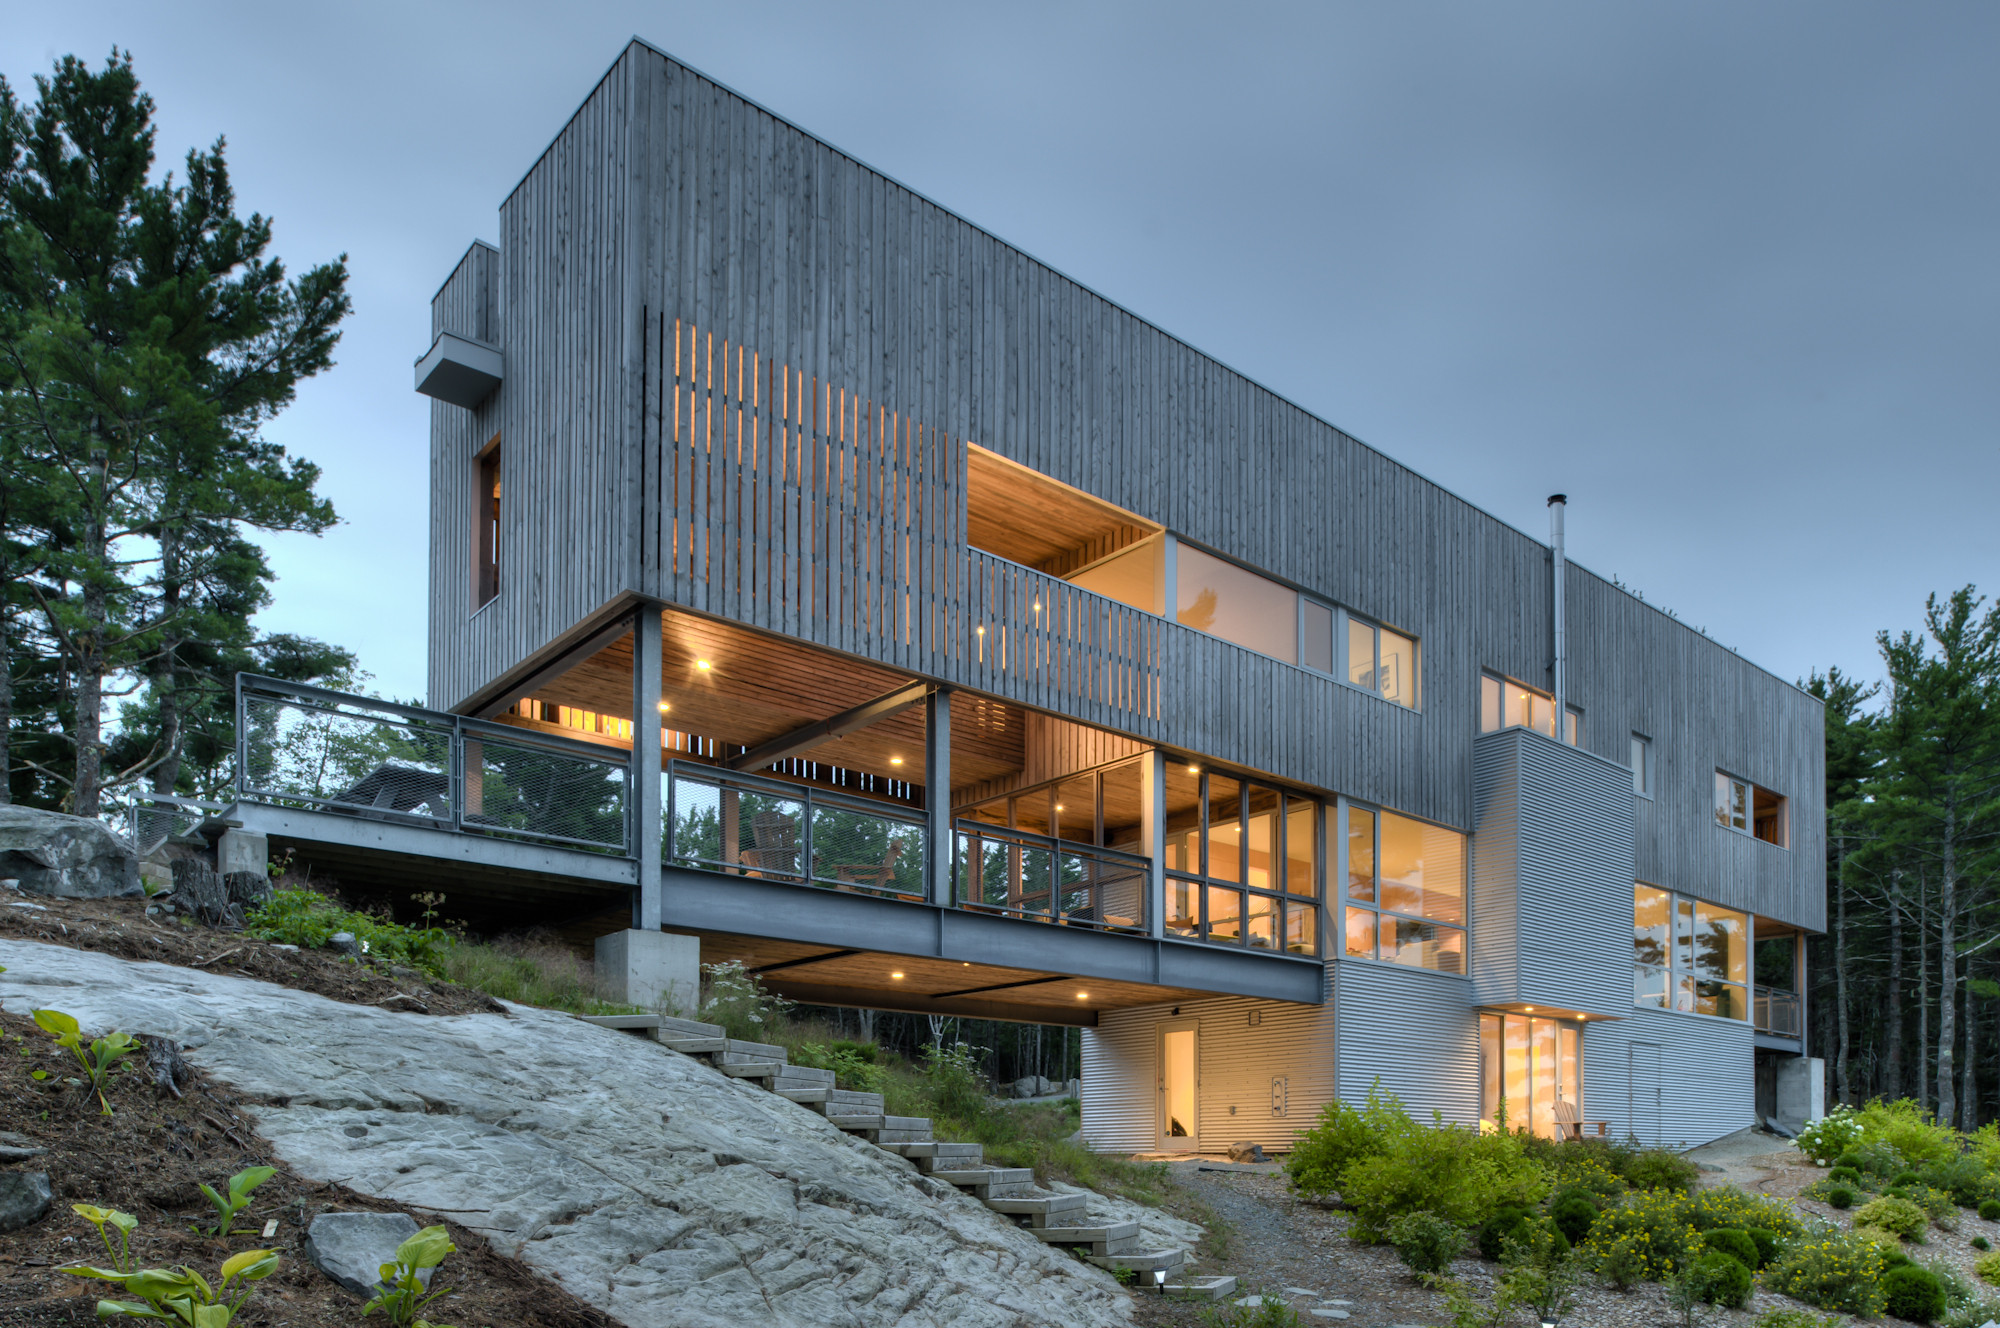 Bridge house mackay lyons sweetapple architects archdaily for Daily hotel